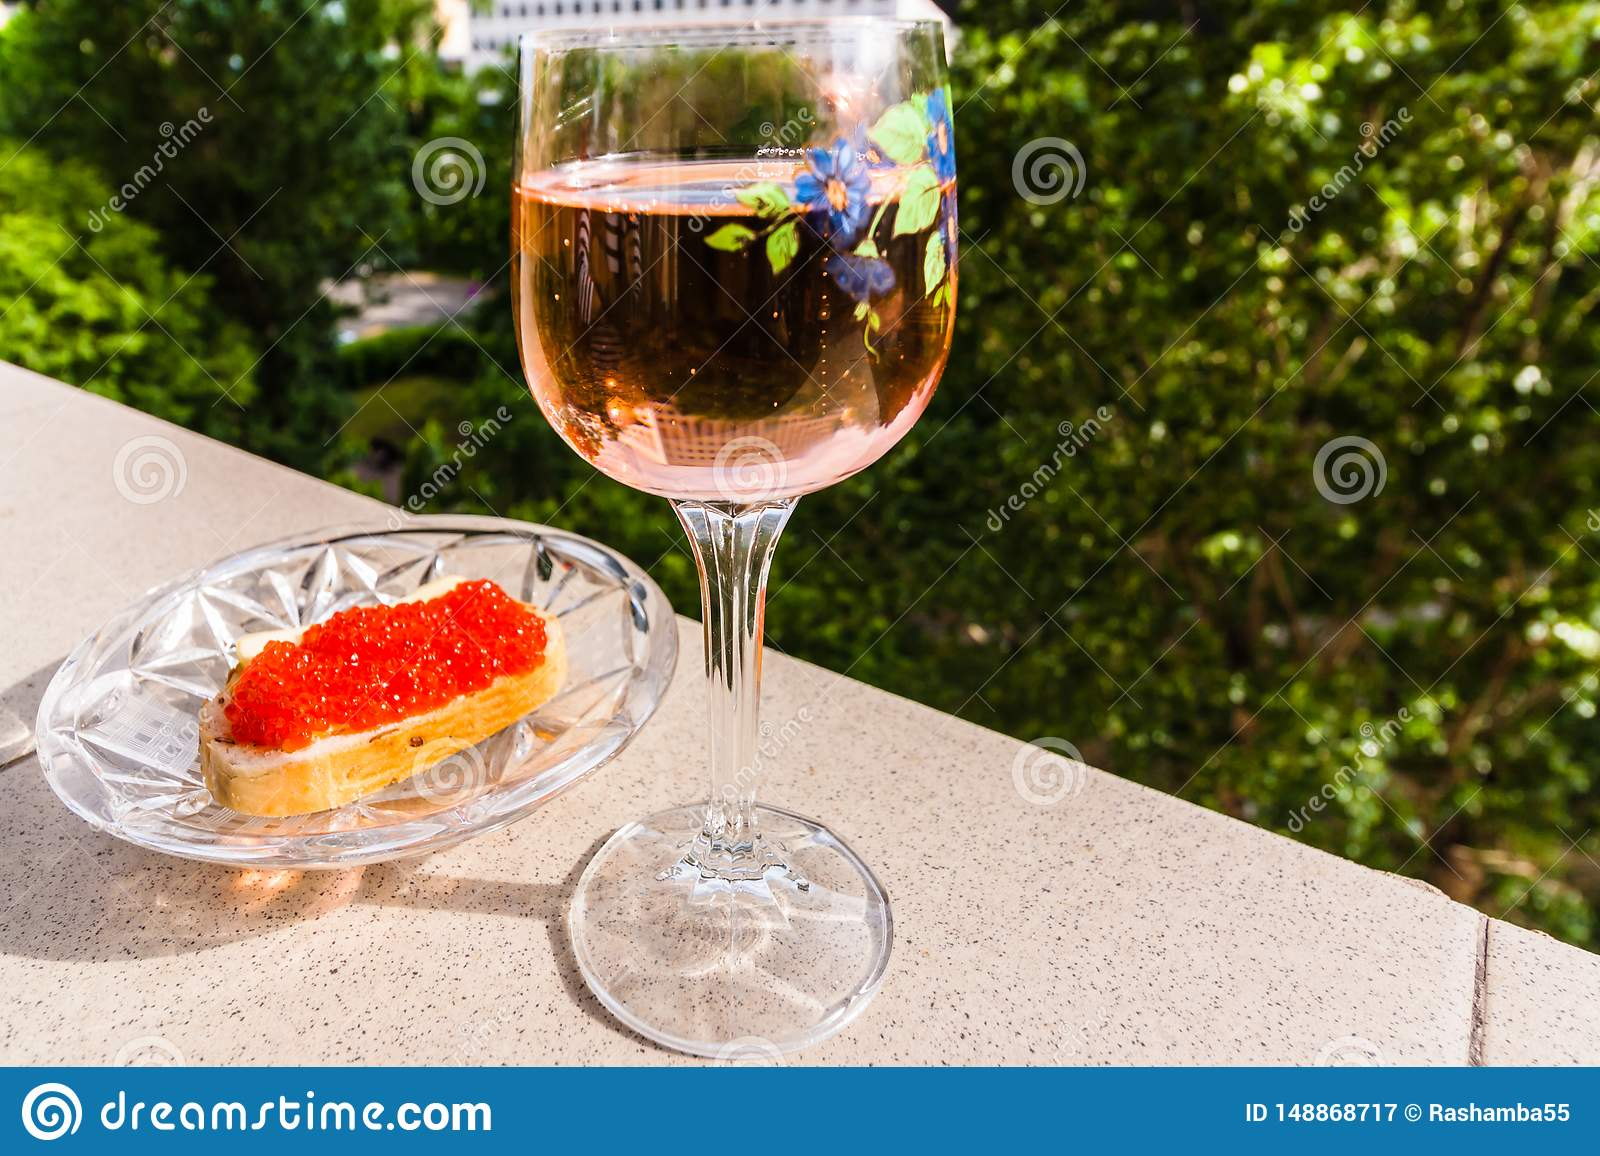 a glass of pink wine and bread with red caviar on the parapet